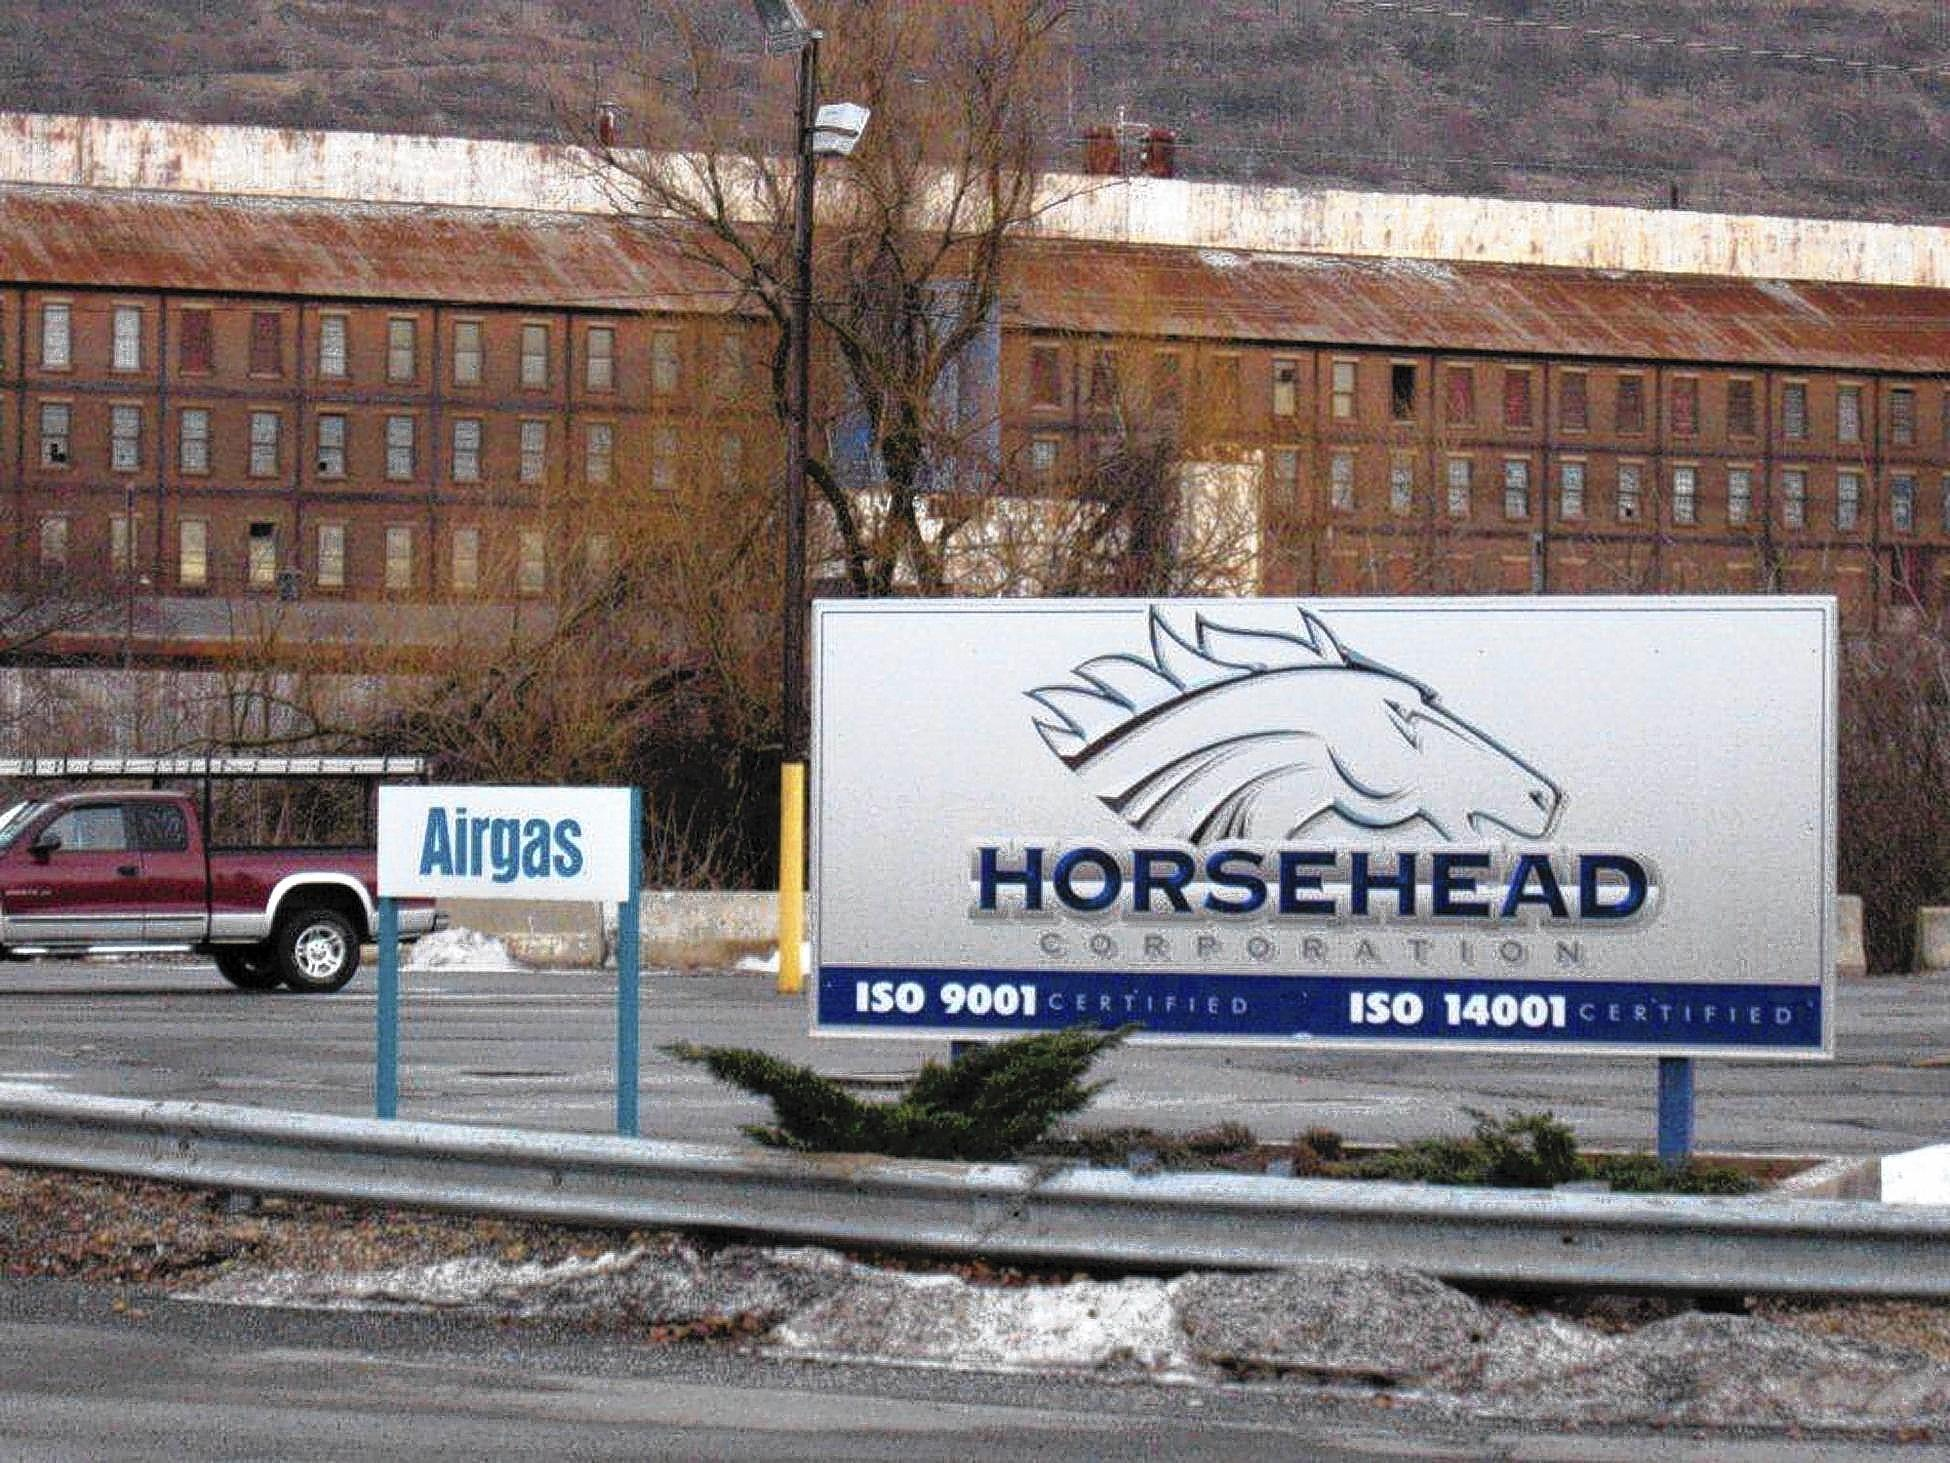 Access to the Airgas plant in Palmerton is restricted, but a sign at the Horsehead Industries entrance reveals its location in a federal Superfund site.